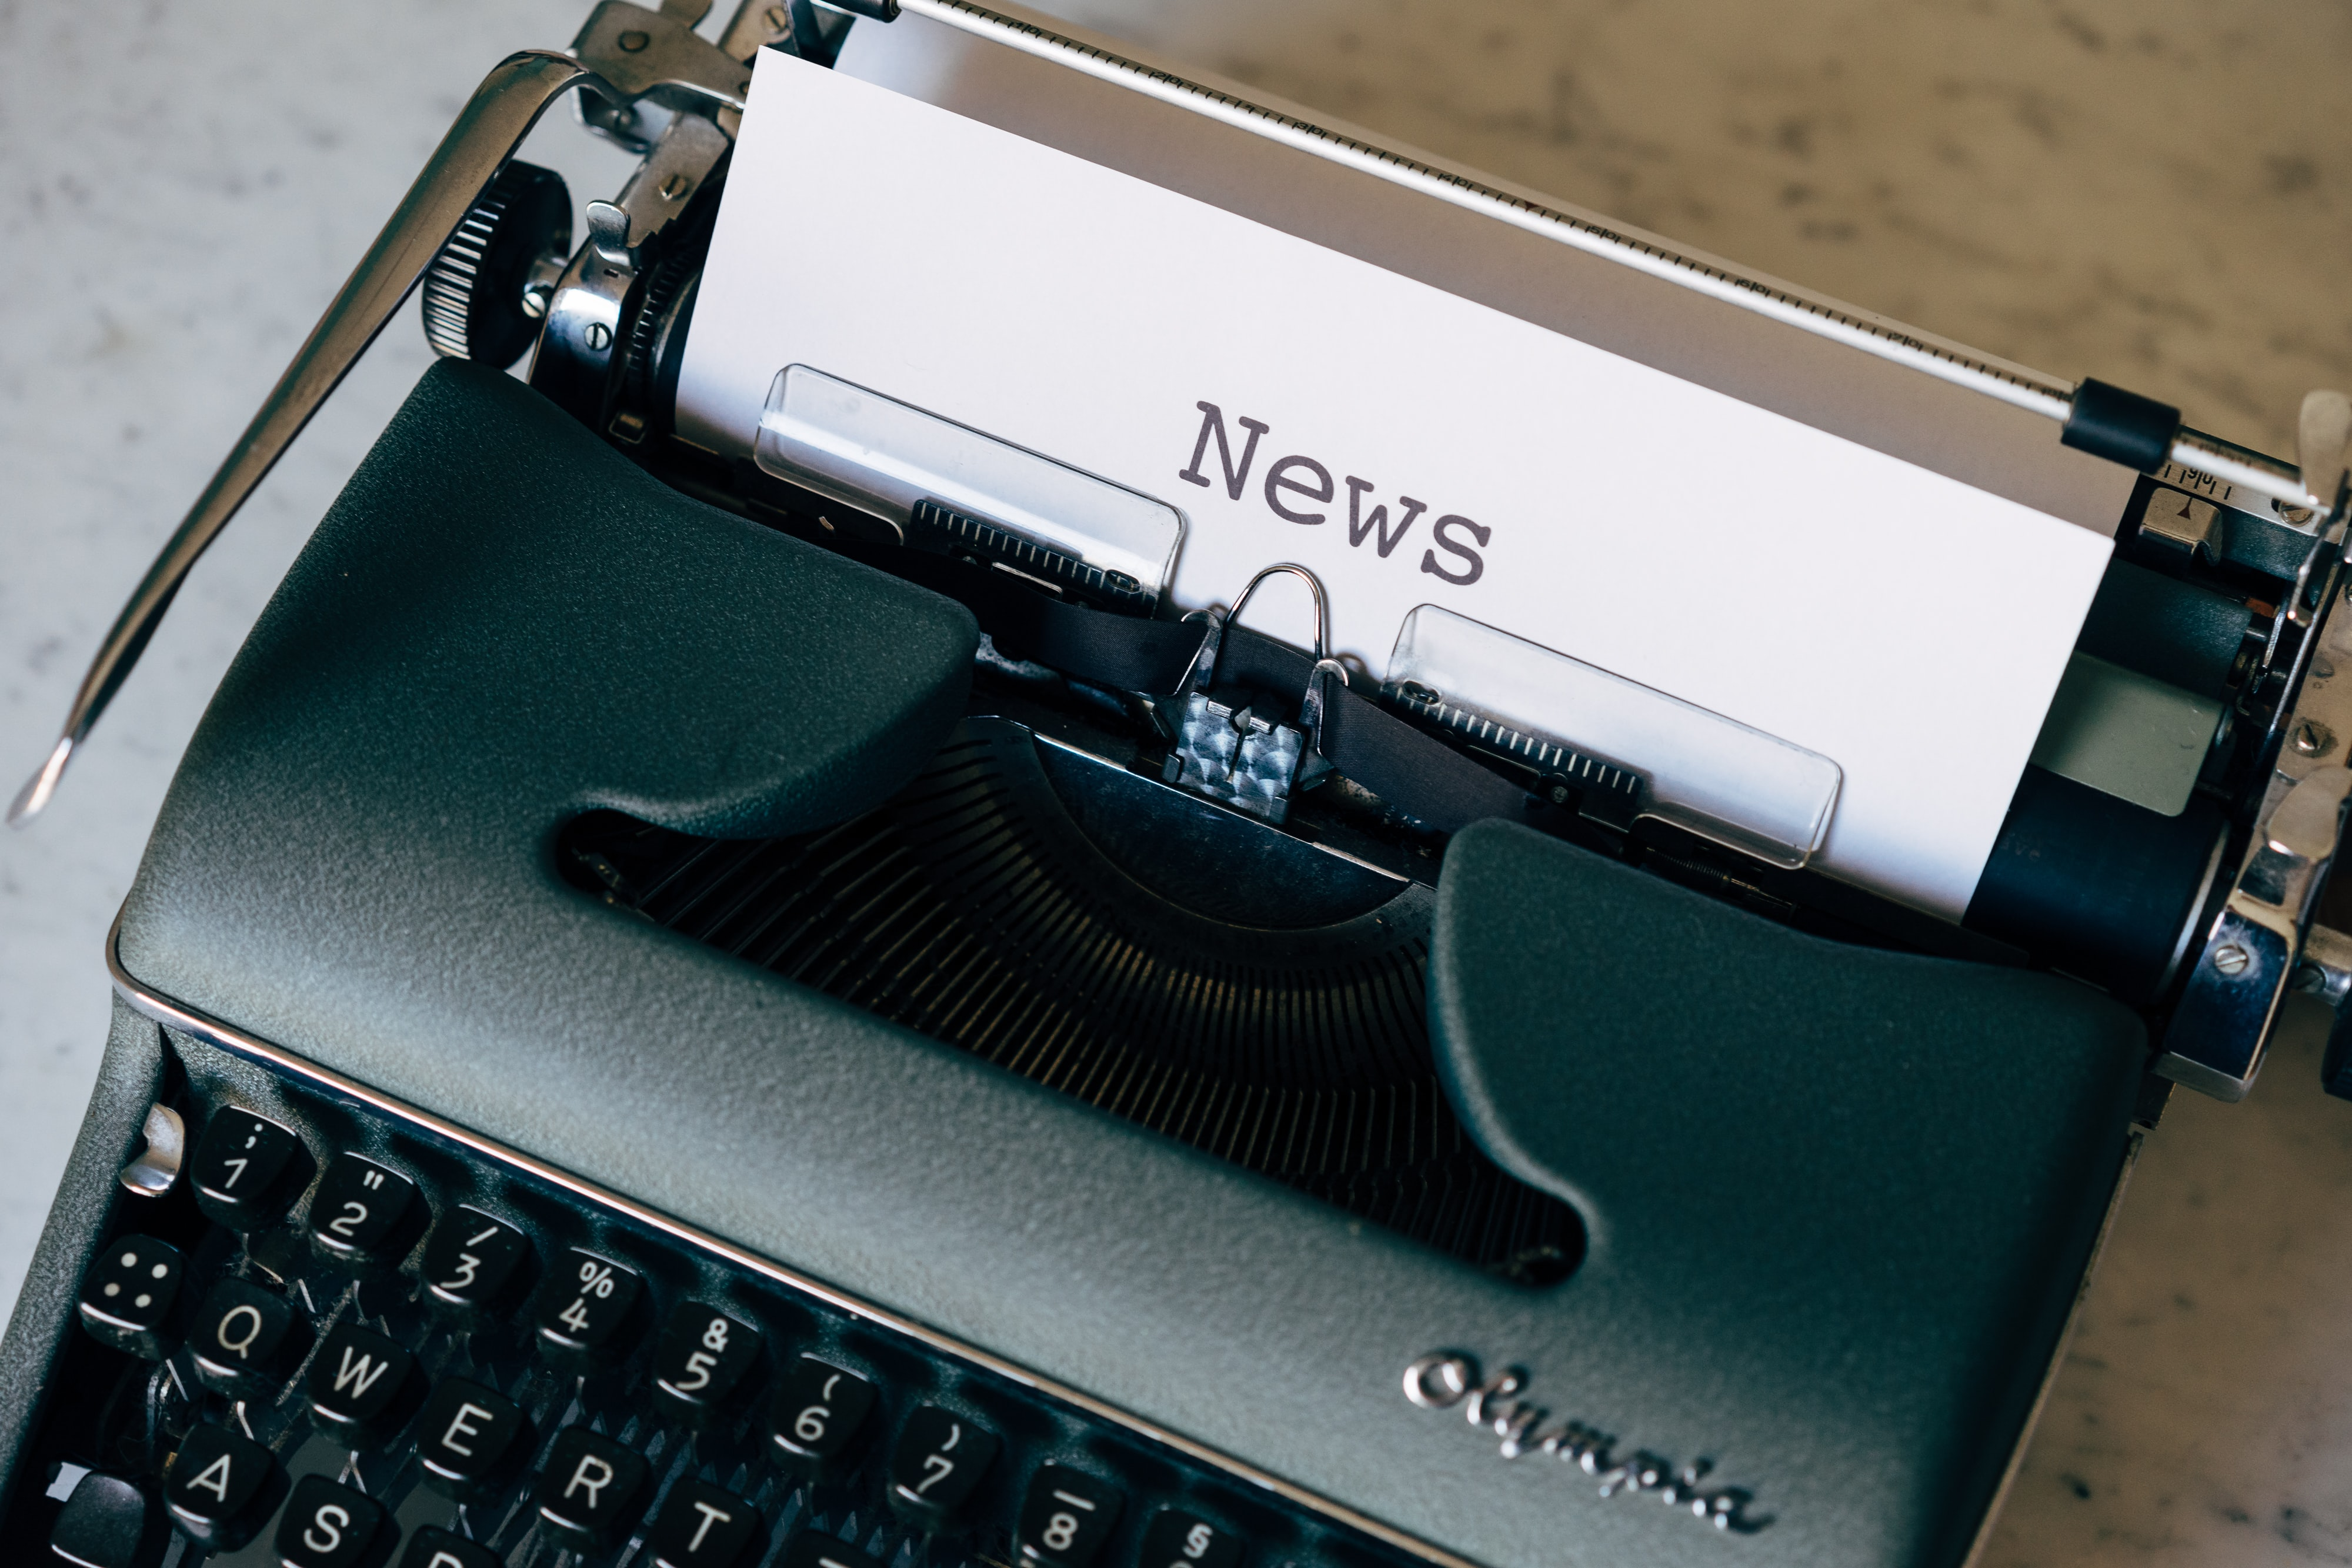 Image of typewriter with the word news printed on a piece of paper